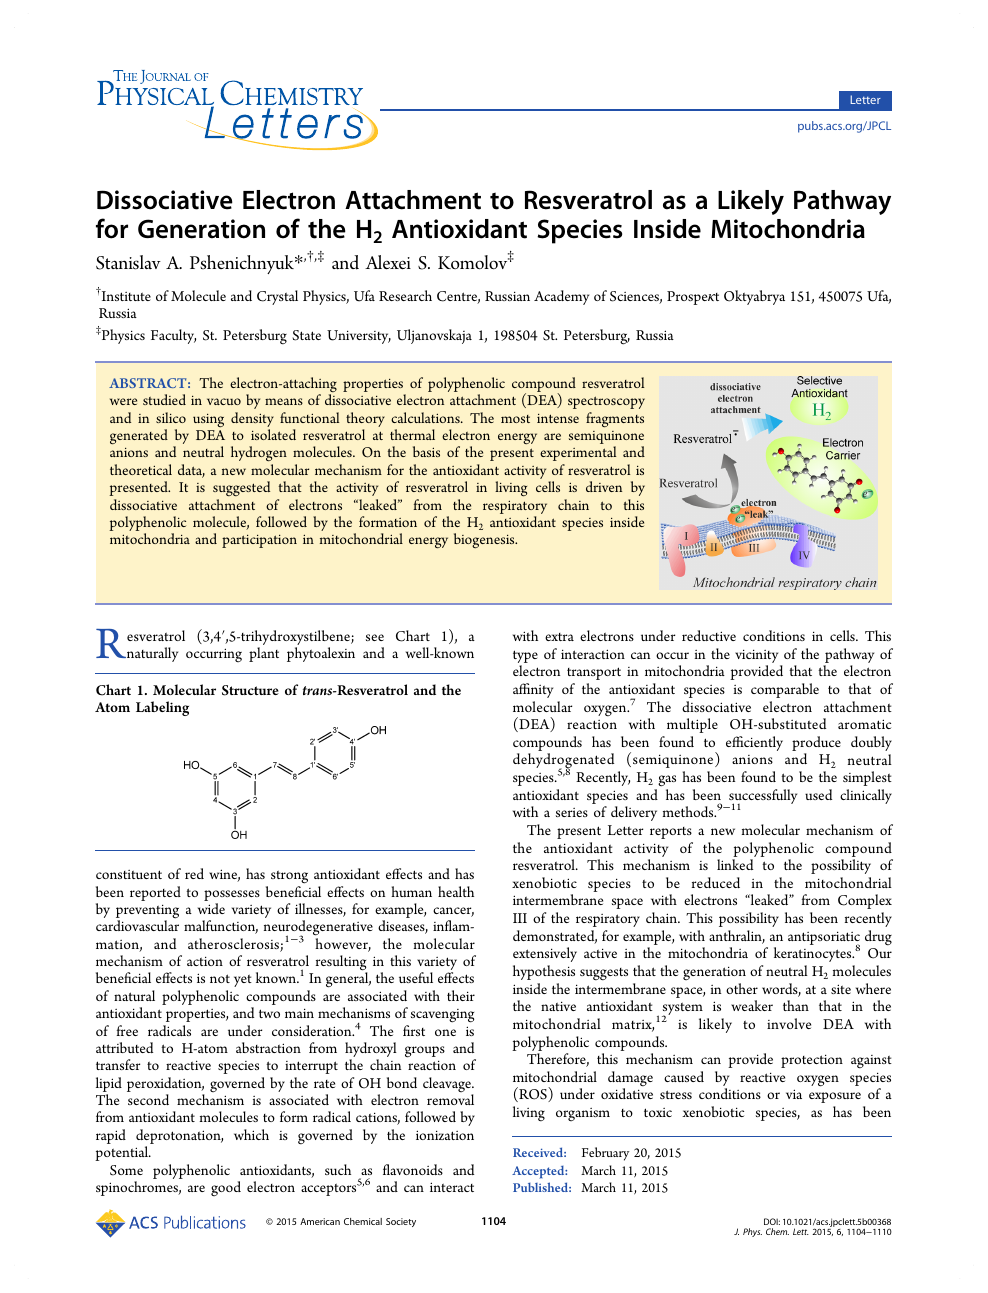 Dissociative Electron Attachment To Resveratrol As A Likely